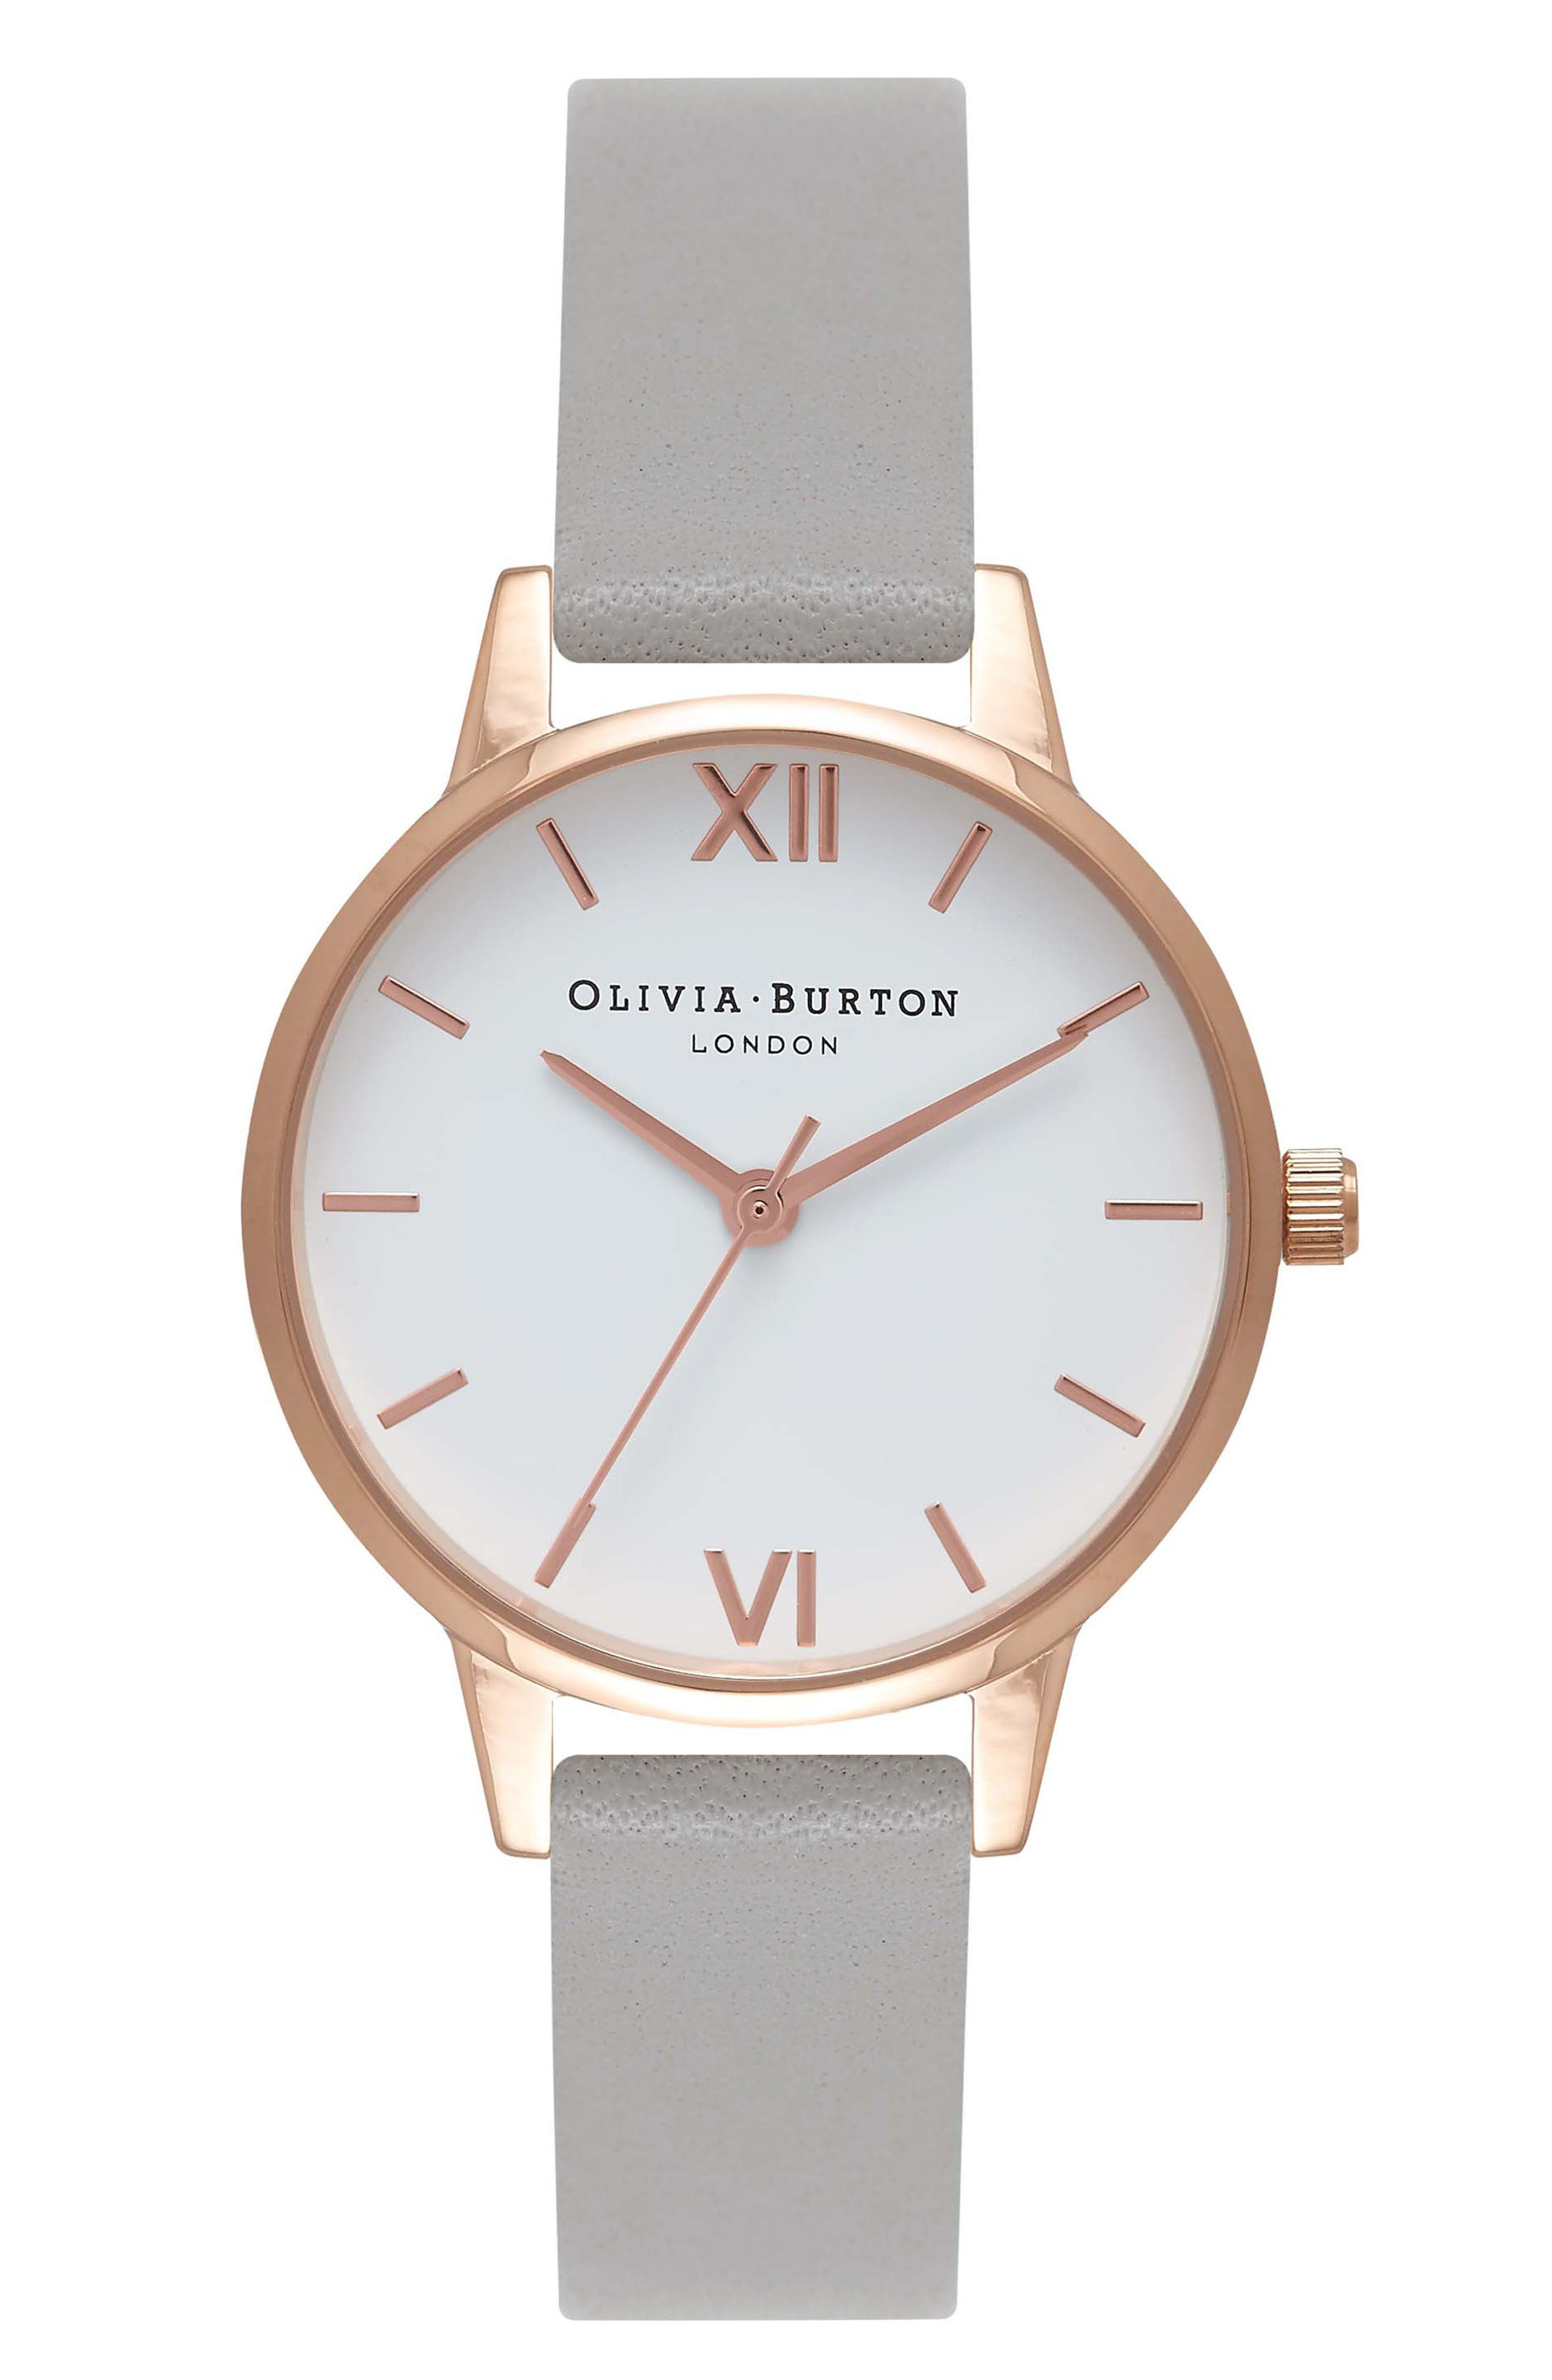 OLIVIA BURTON Midi Dial Leather Strap Watch, 30mm, Main, color, GREY/ WHITE/ ROSE GOLD